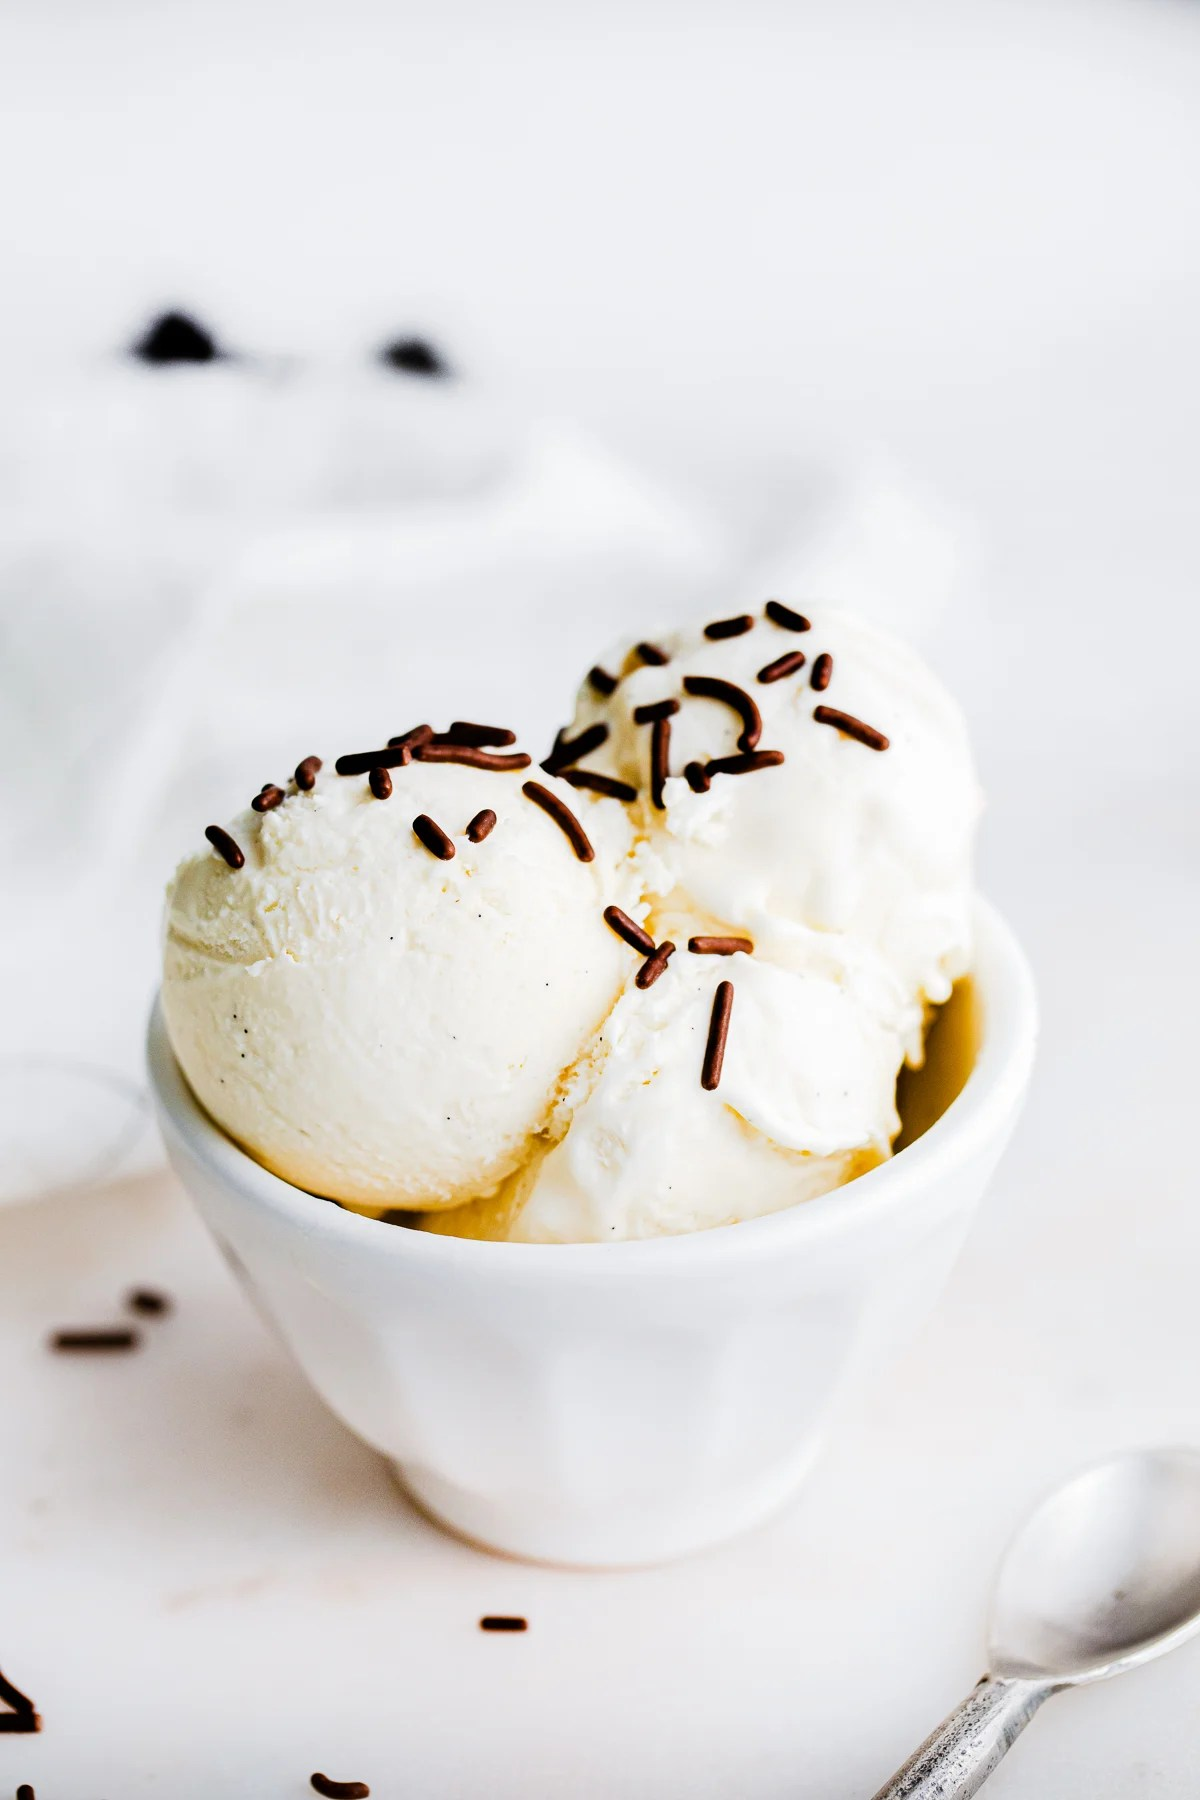 Ice cream in white bowl with chocolate sprinkles